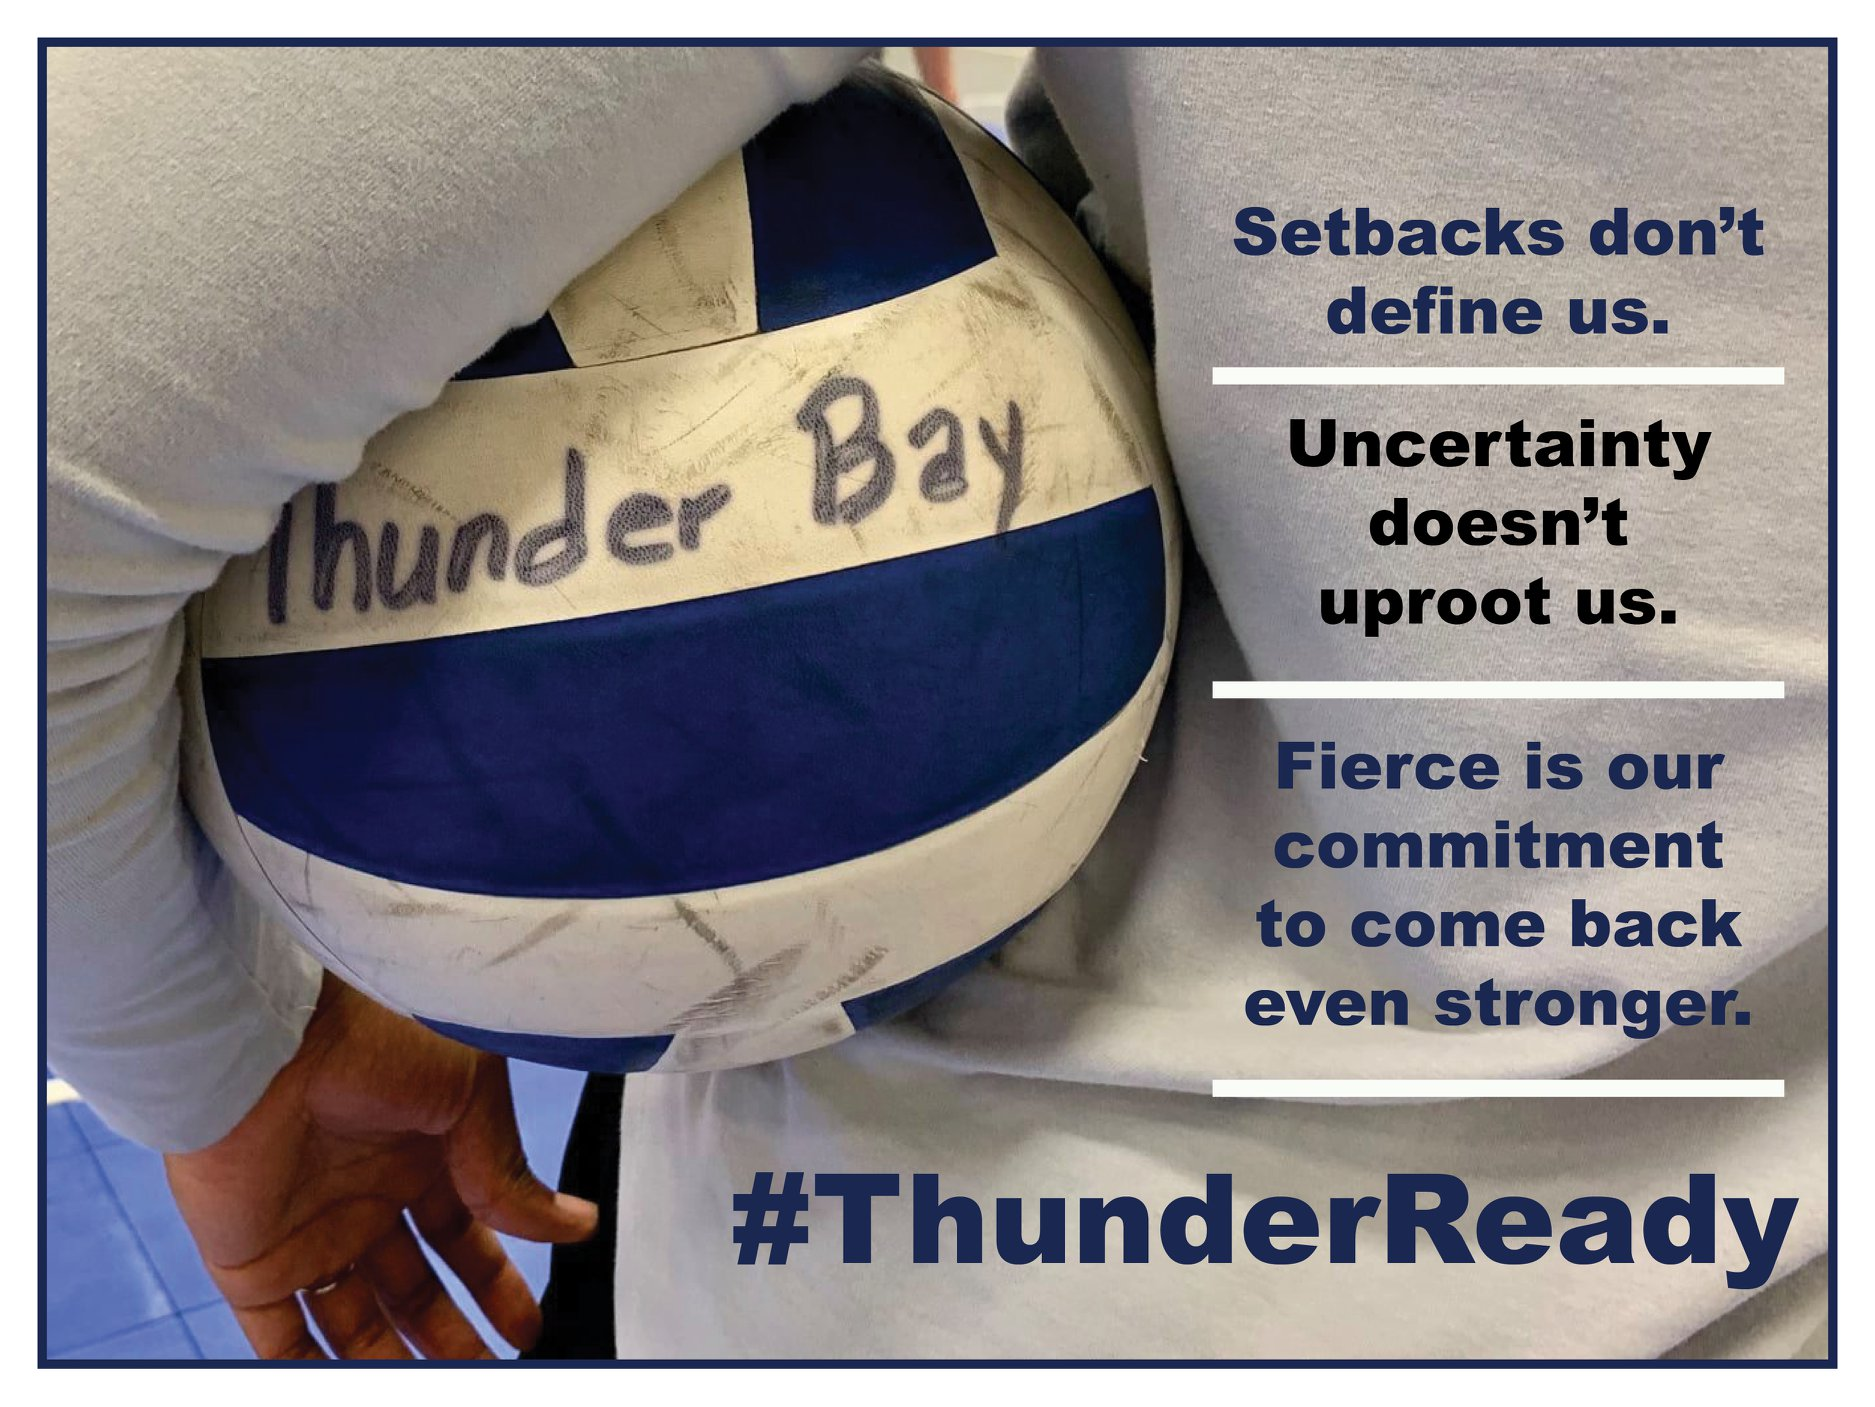 #ThunderReady